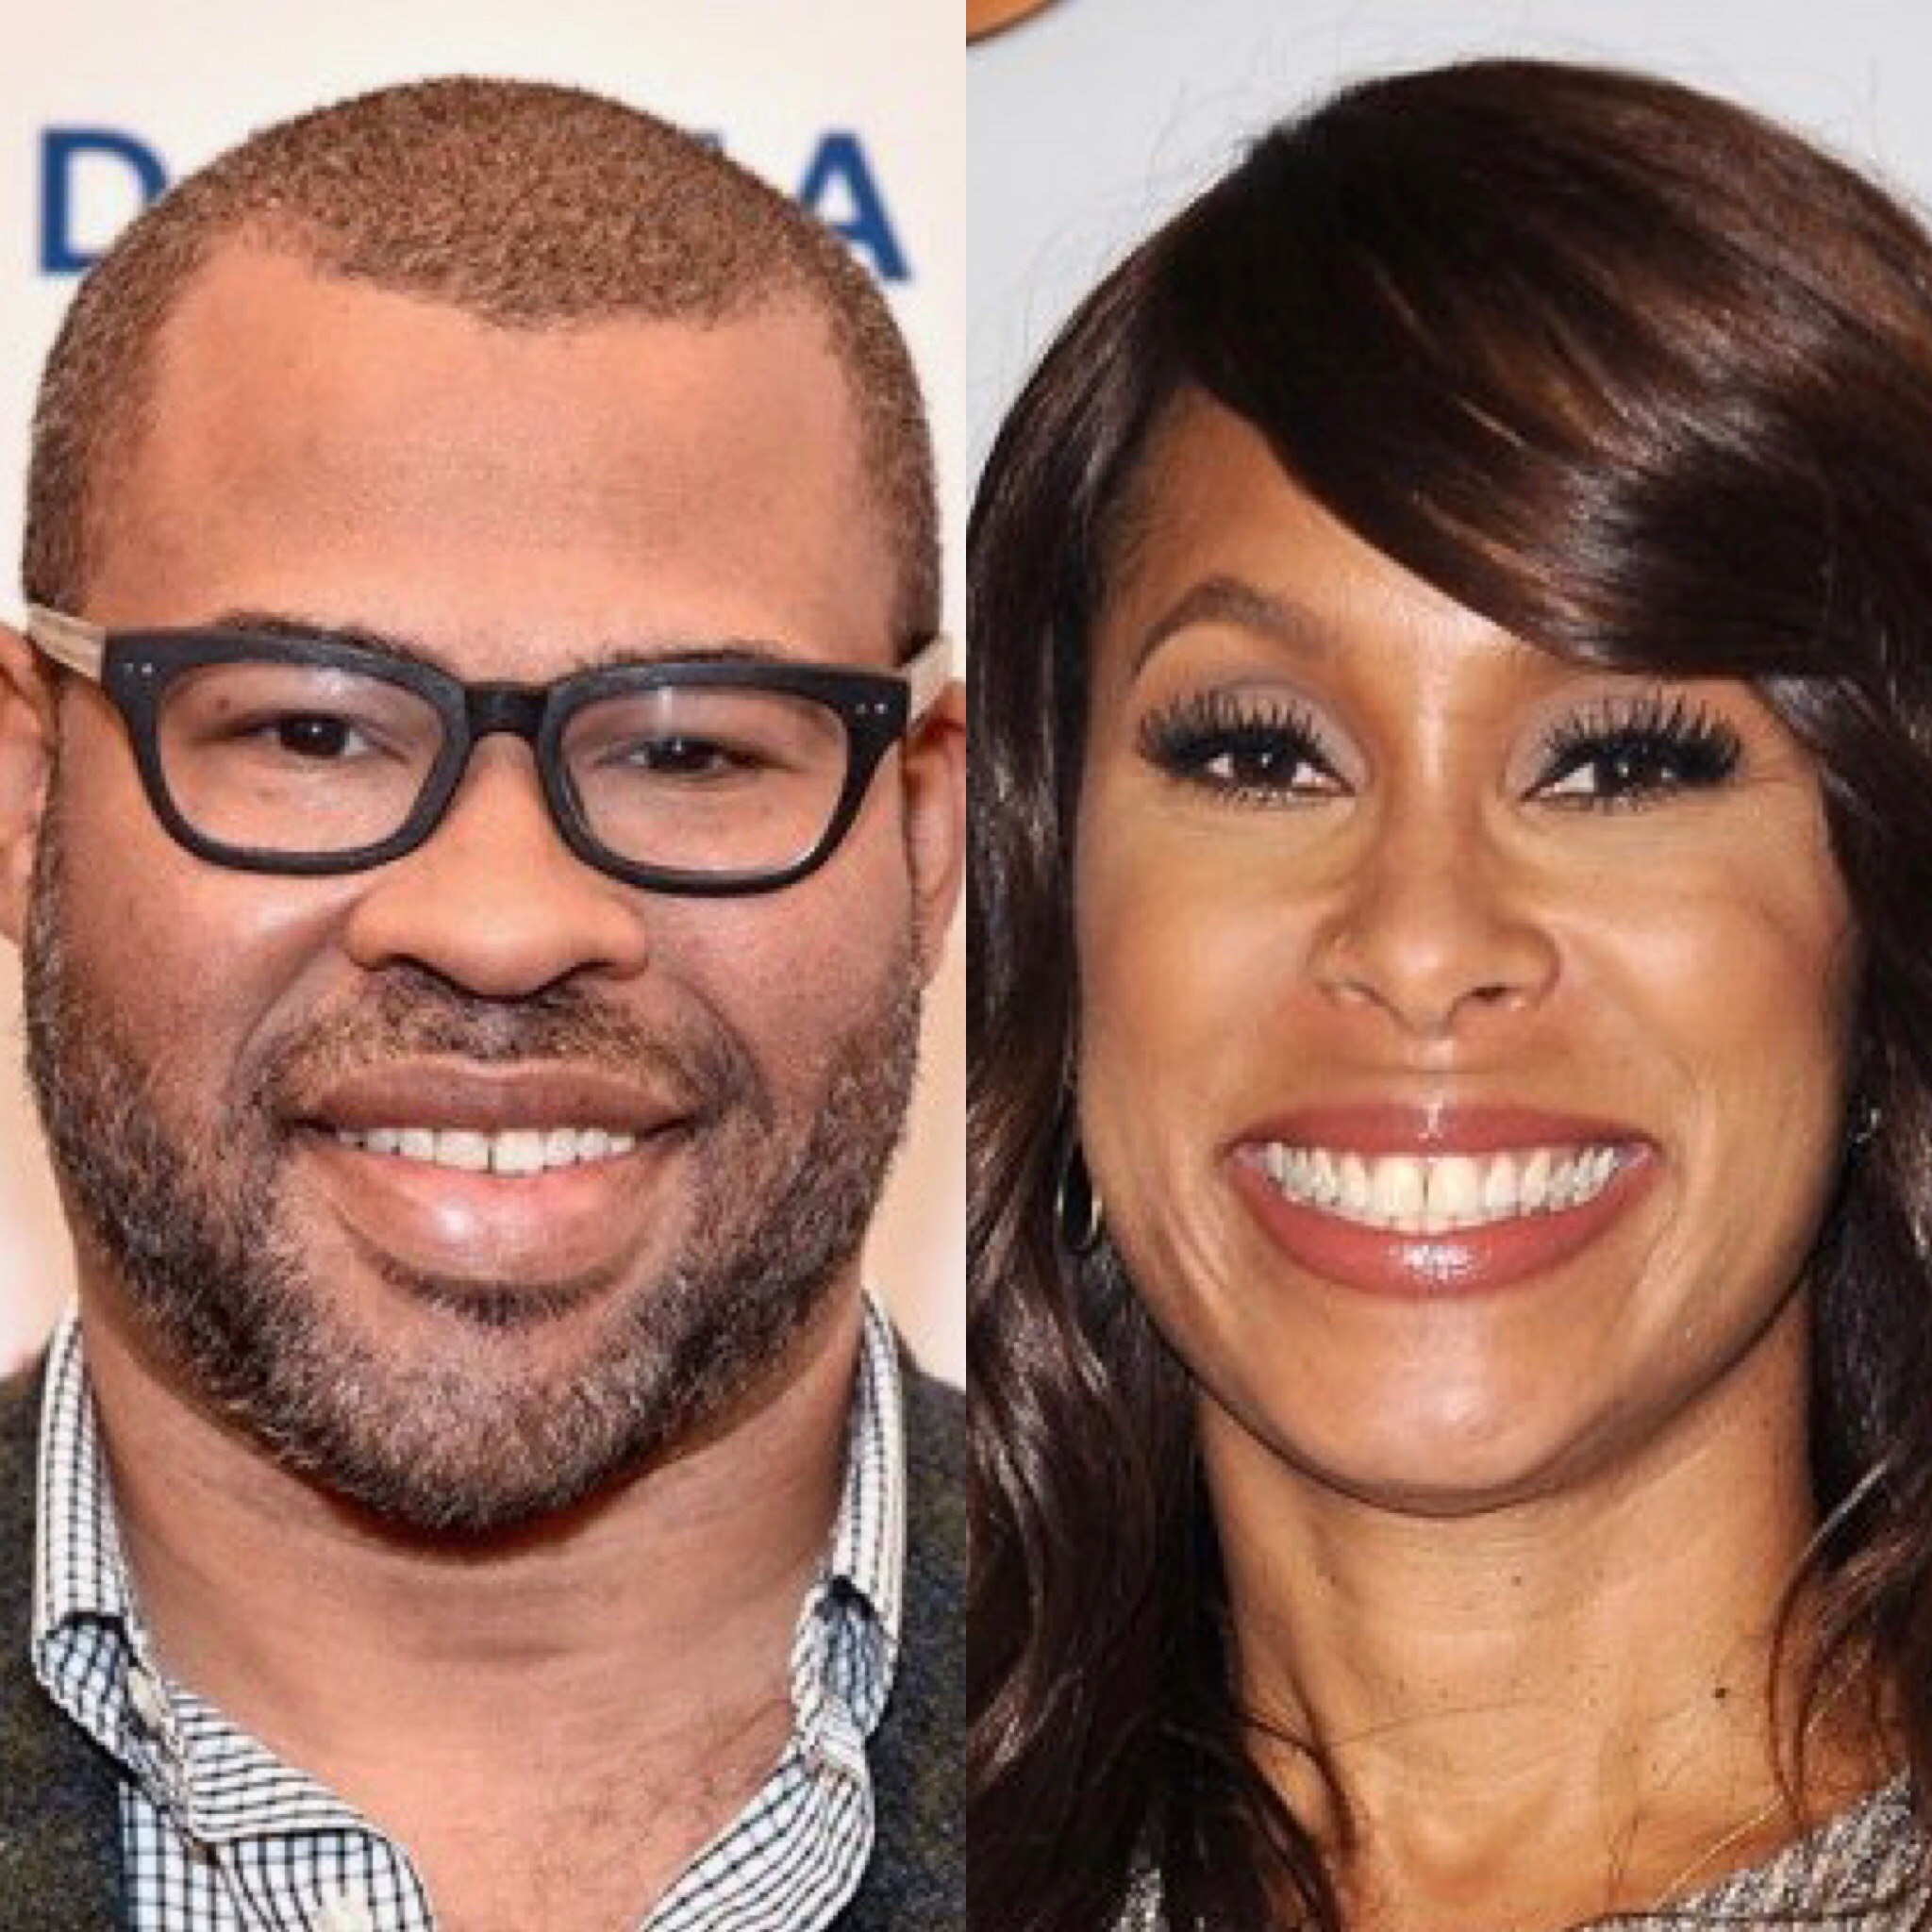 Jordan Peele and Channing Dungey